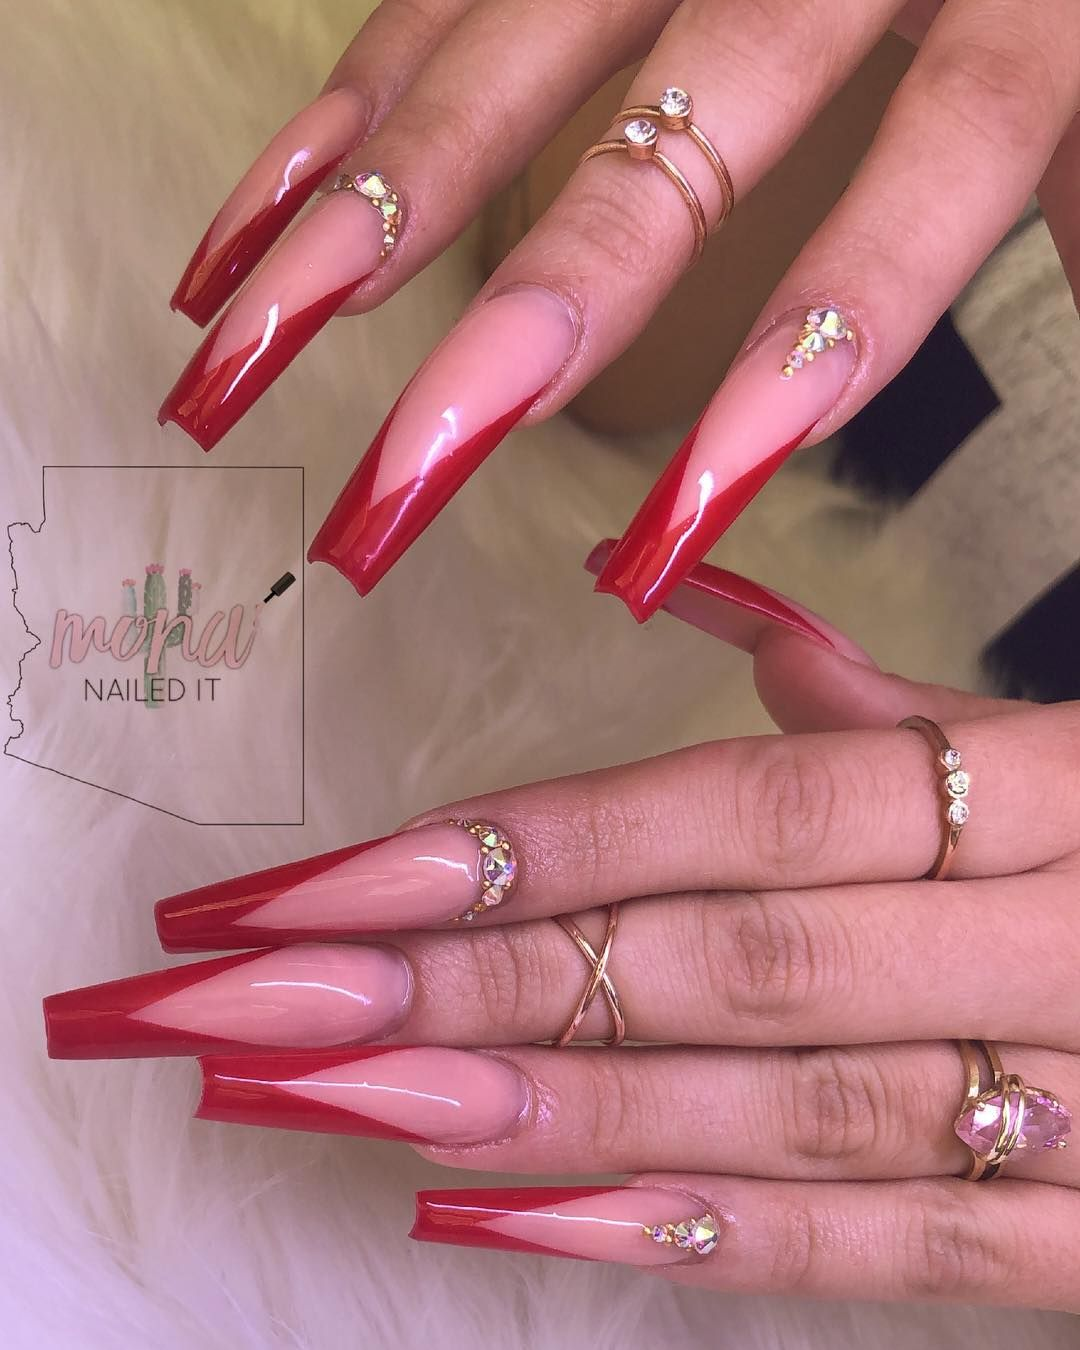 Image May Contain One Or More People And Closeup Sculpted Nails Red Acrylic Nails Red Tip Nails